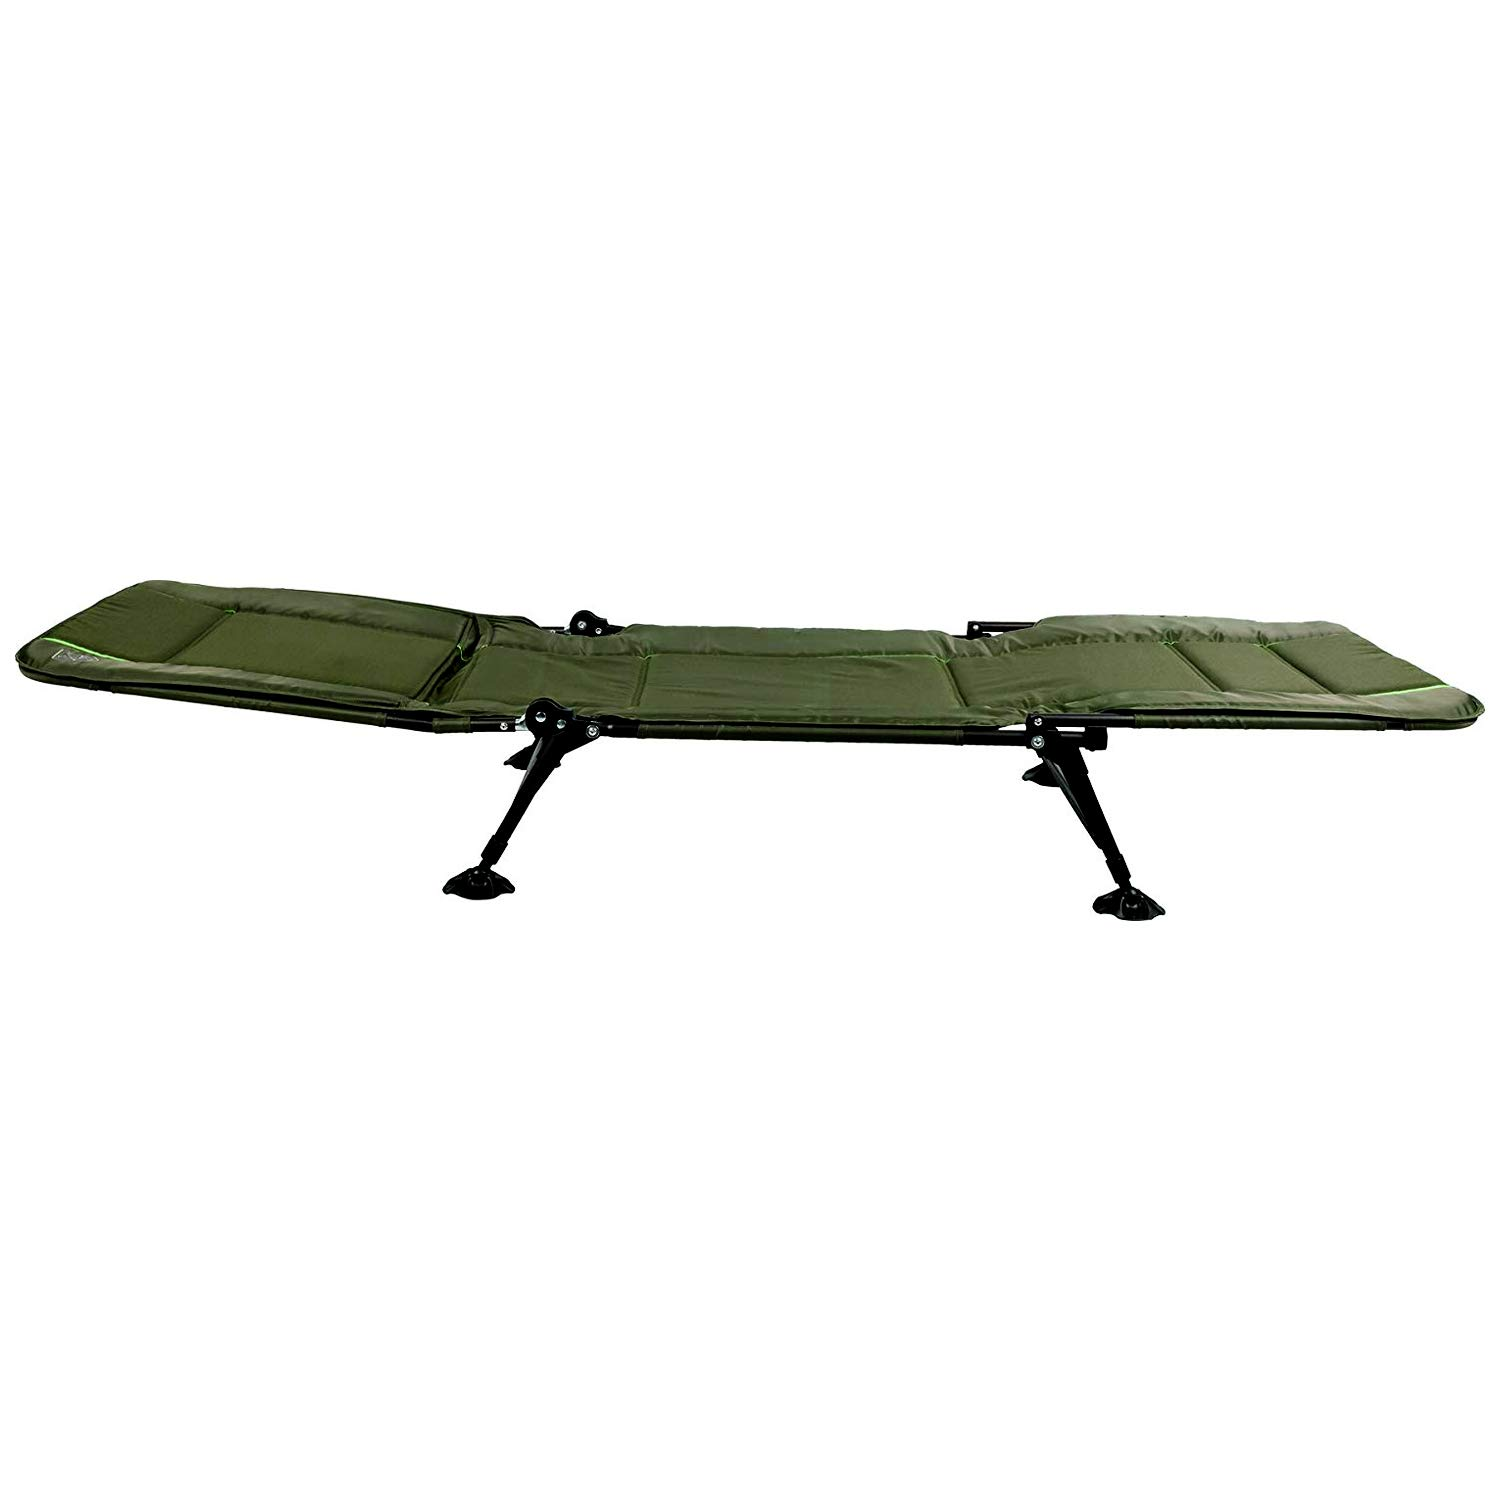 Timber Ridge Juniper Heavy Duty Quickset Adjustable Folding Camp Cot, Green